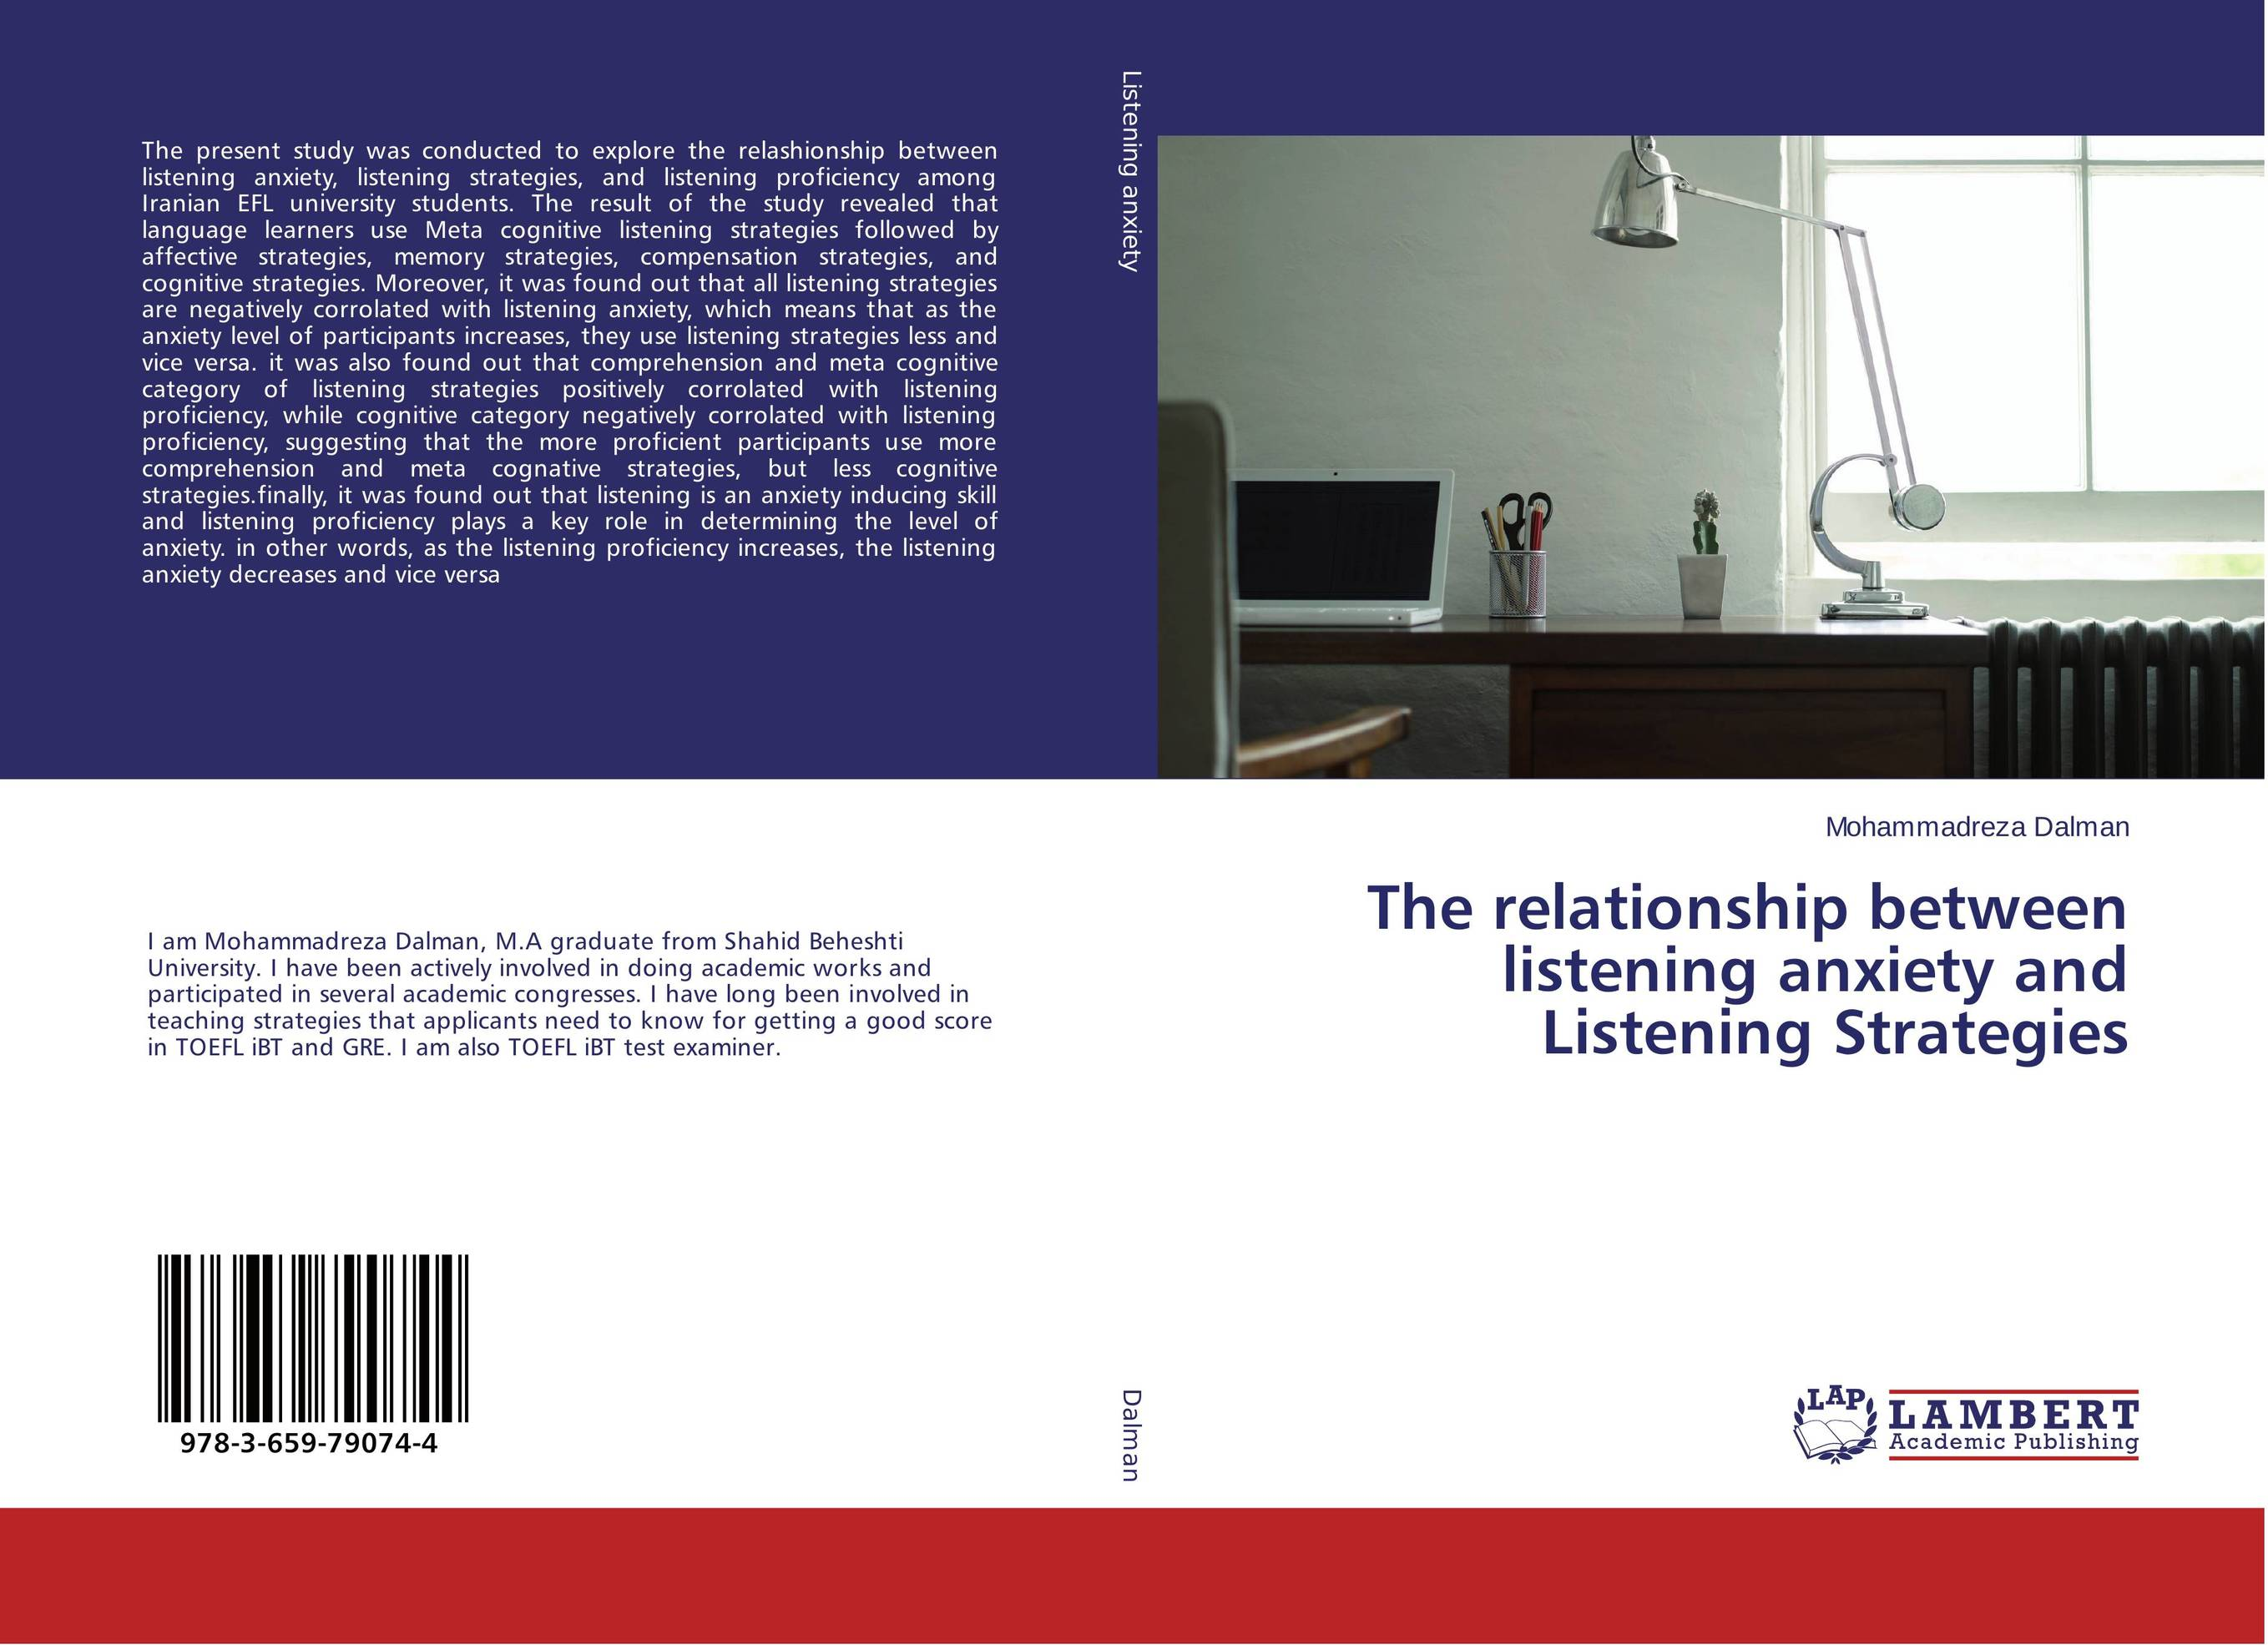 The relationship between listening anxiety and Listening Strategies stefan hofmann g psychobiological approaches for anxiety disorders treatment combination strategies